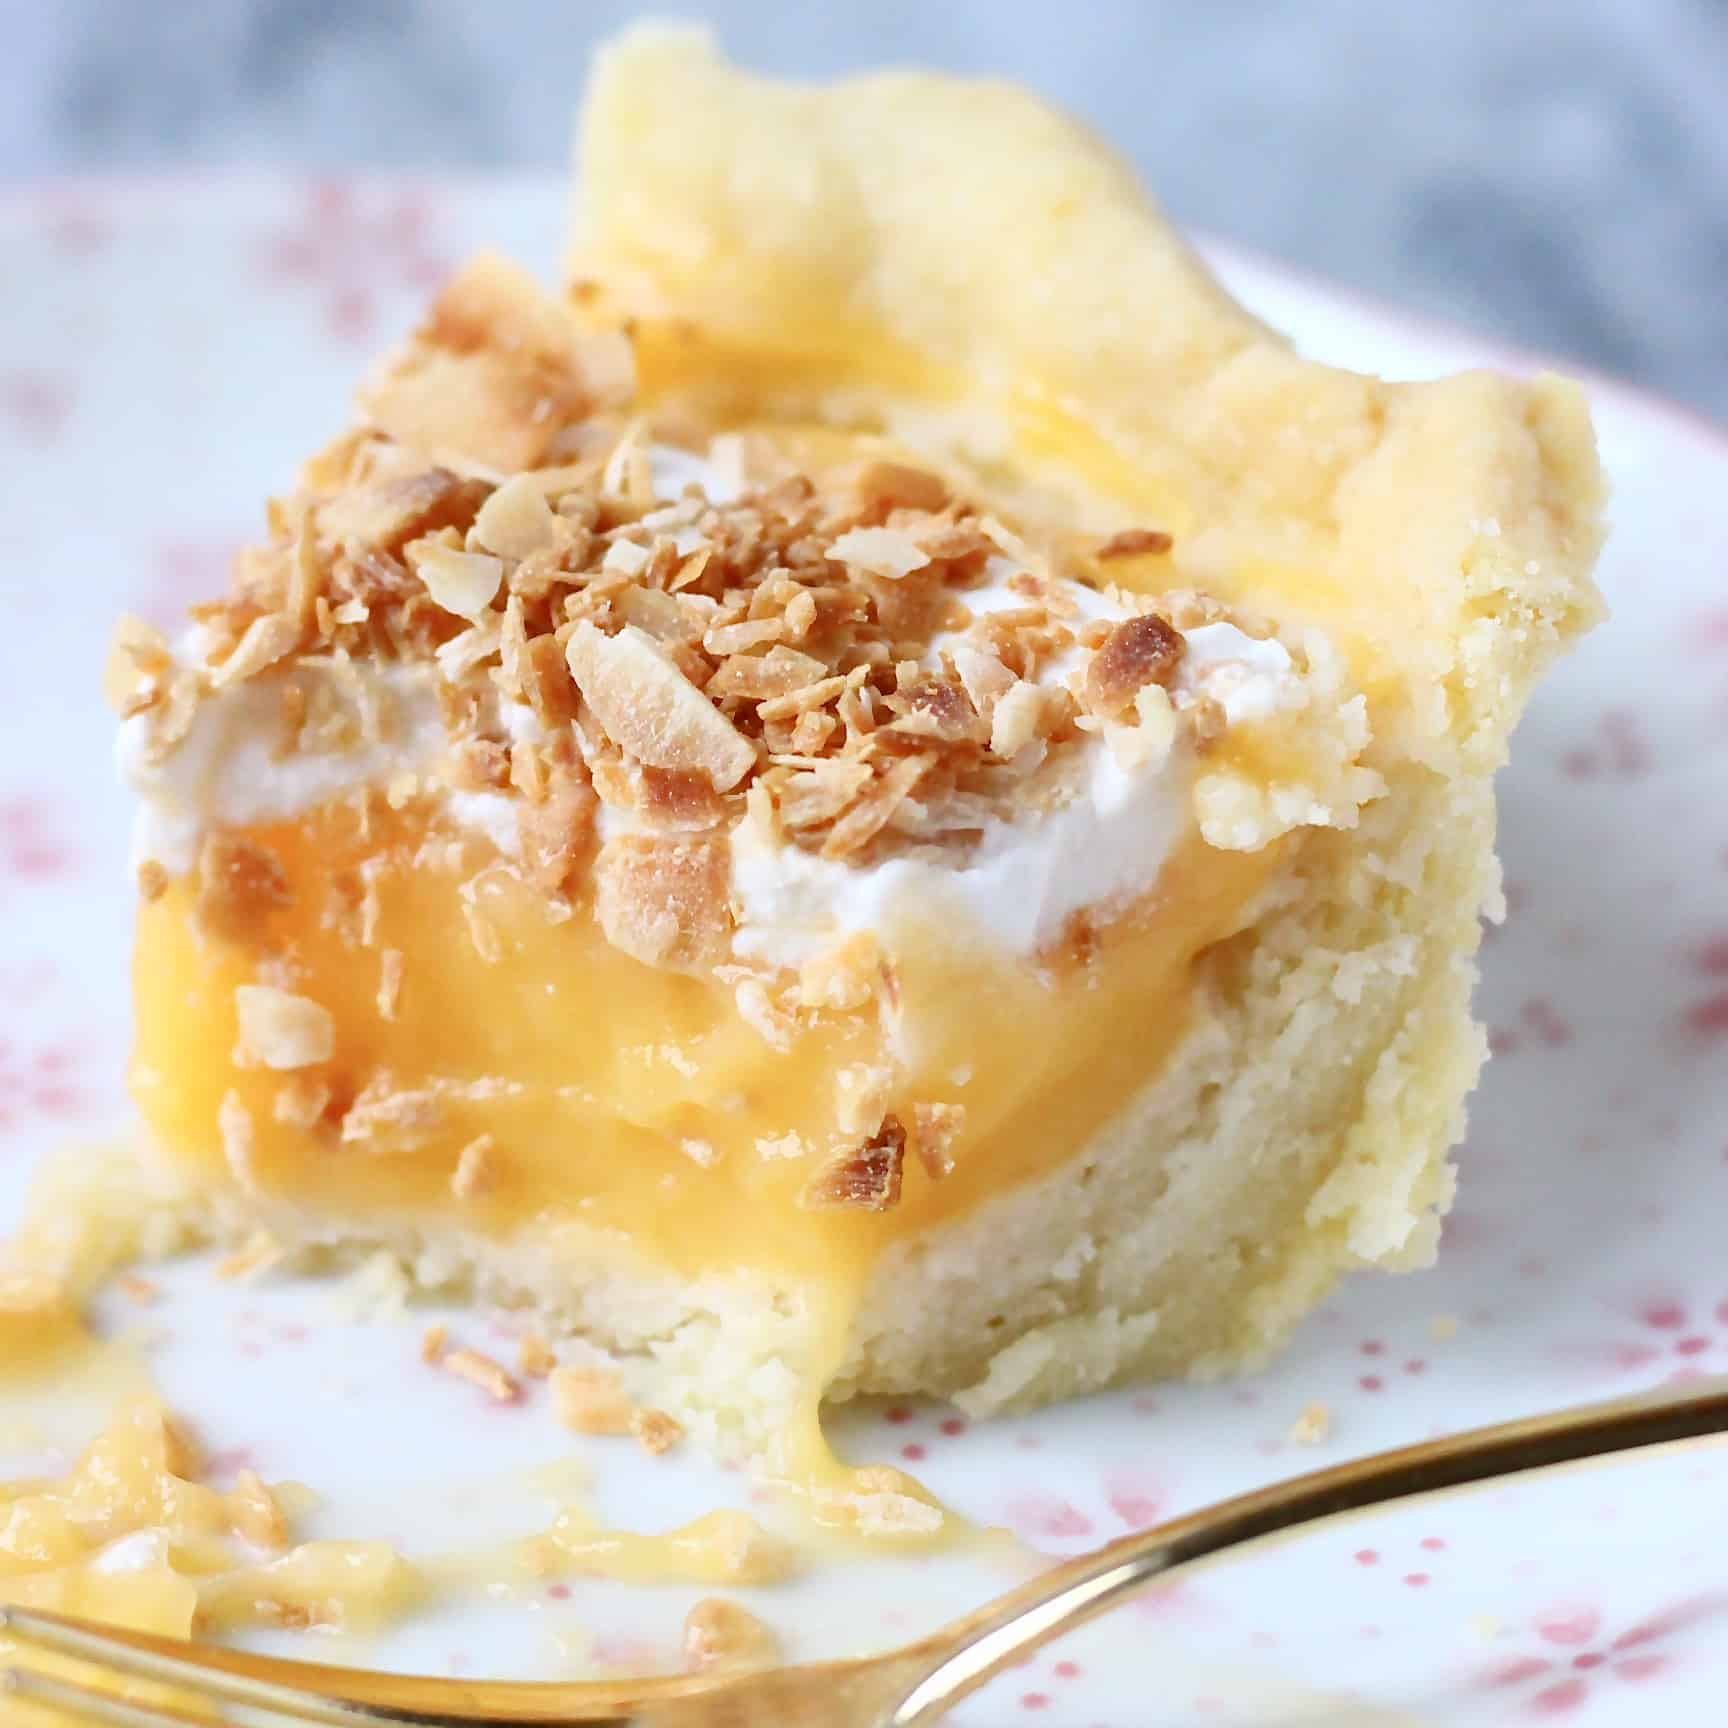 Gluten-Free Vegan Lemon Pie